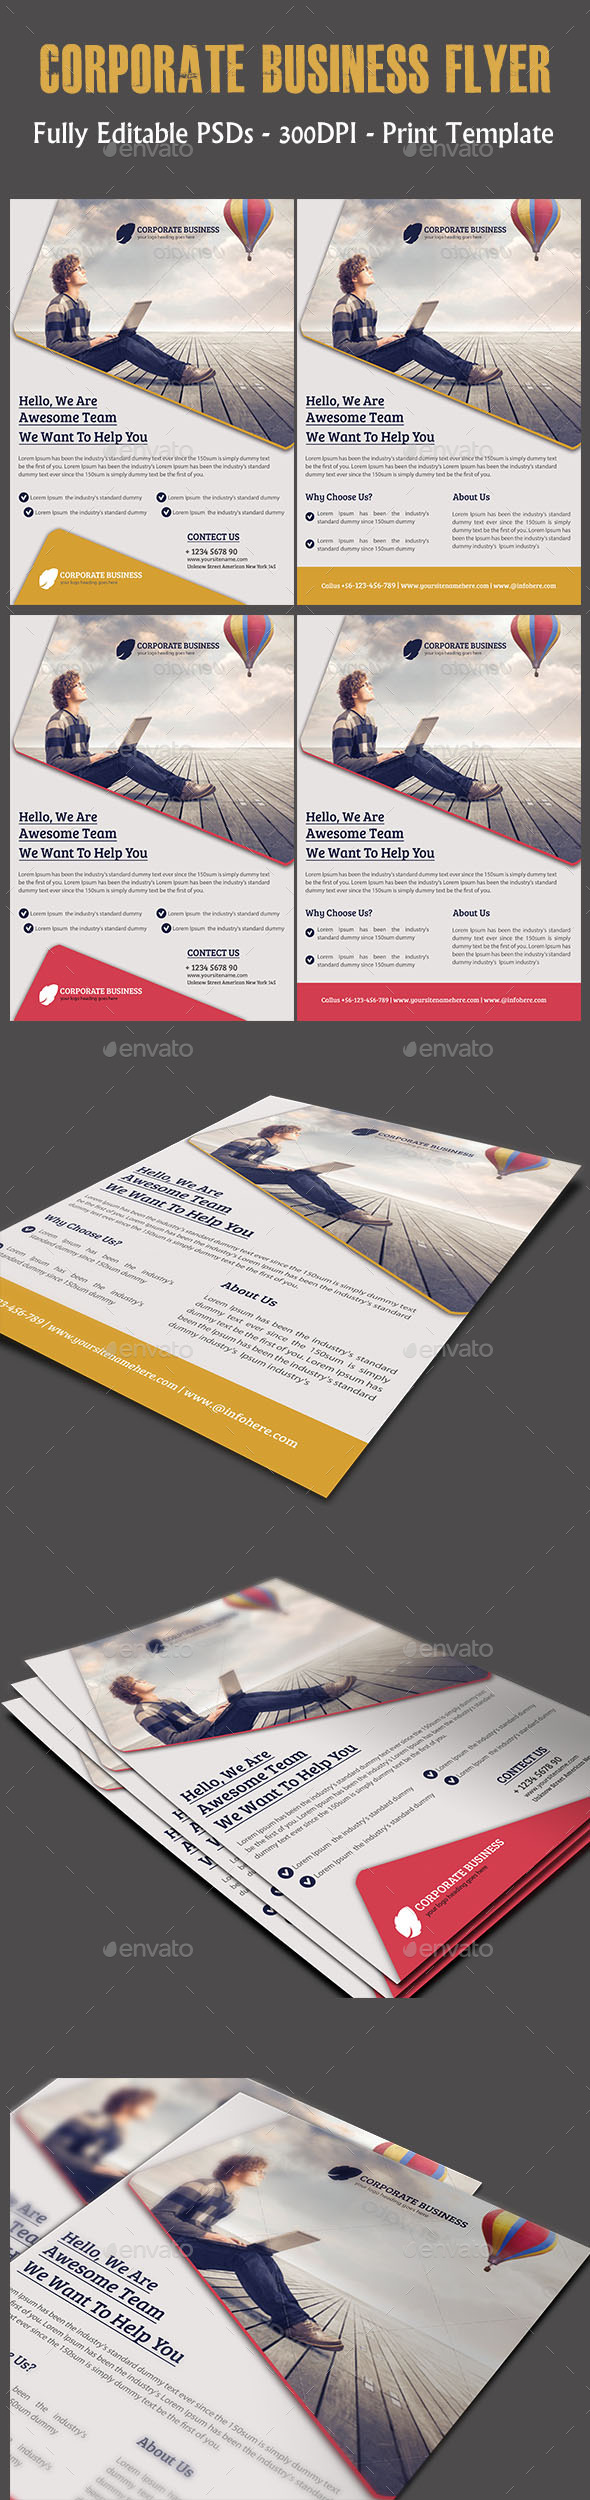 GraphicRiver Corporate Business Flyer 11920804